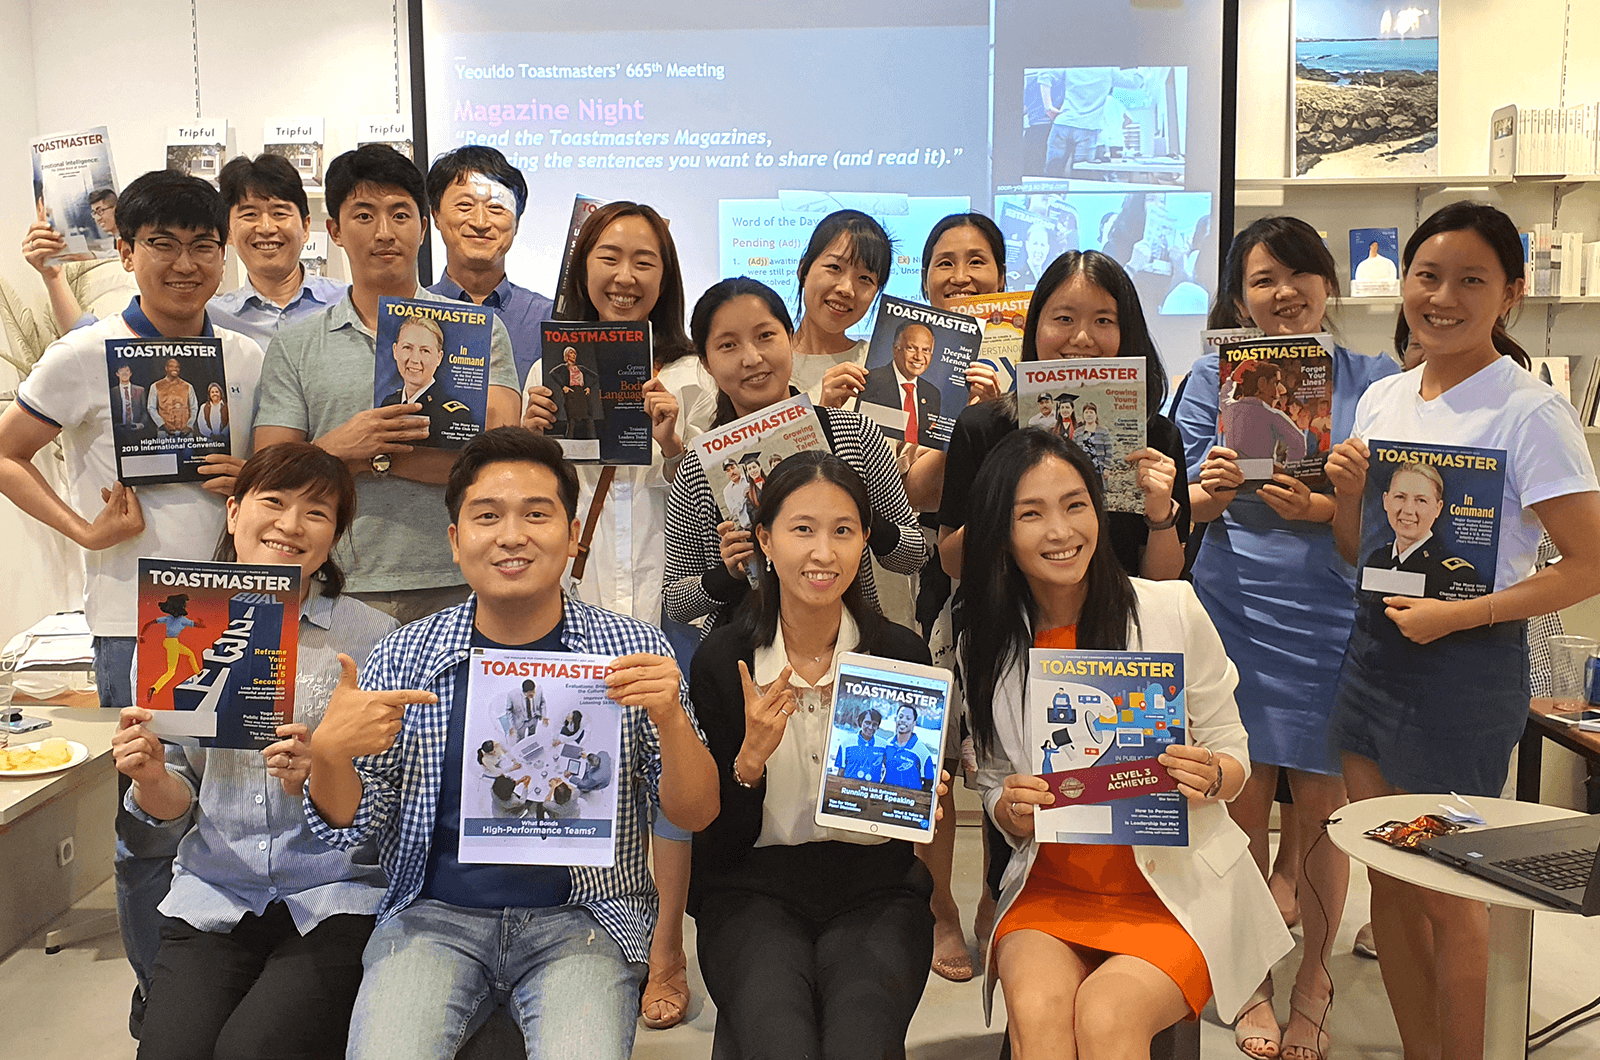 Group of people posing with Toastmaster magazines